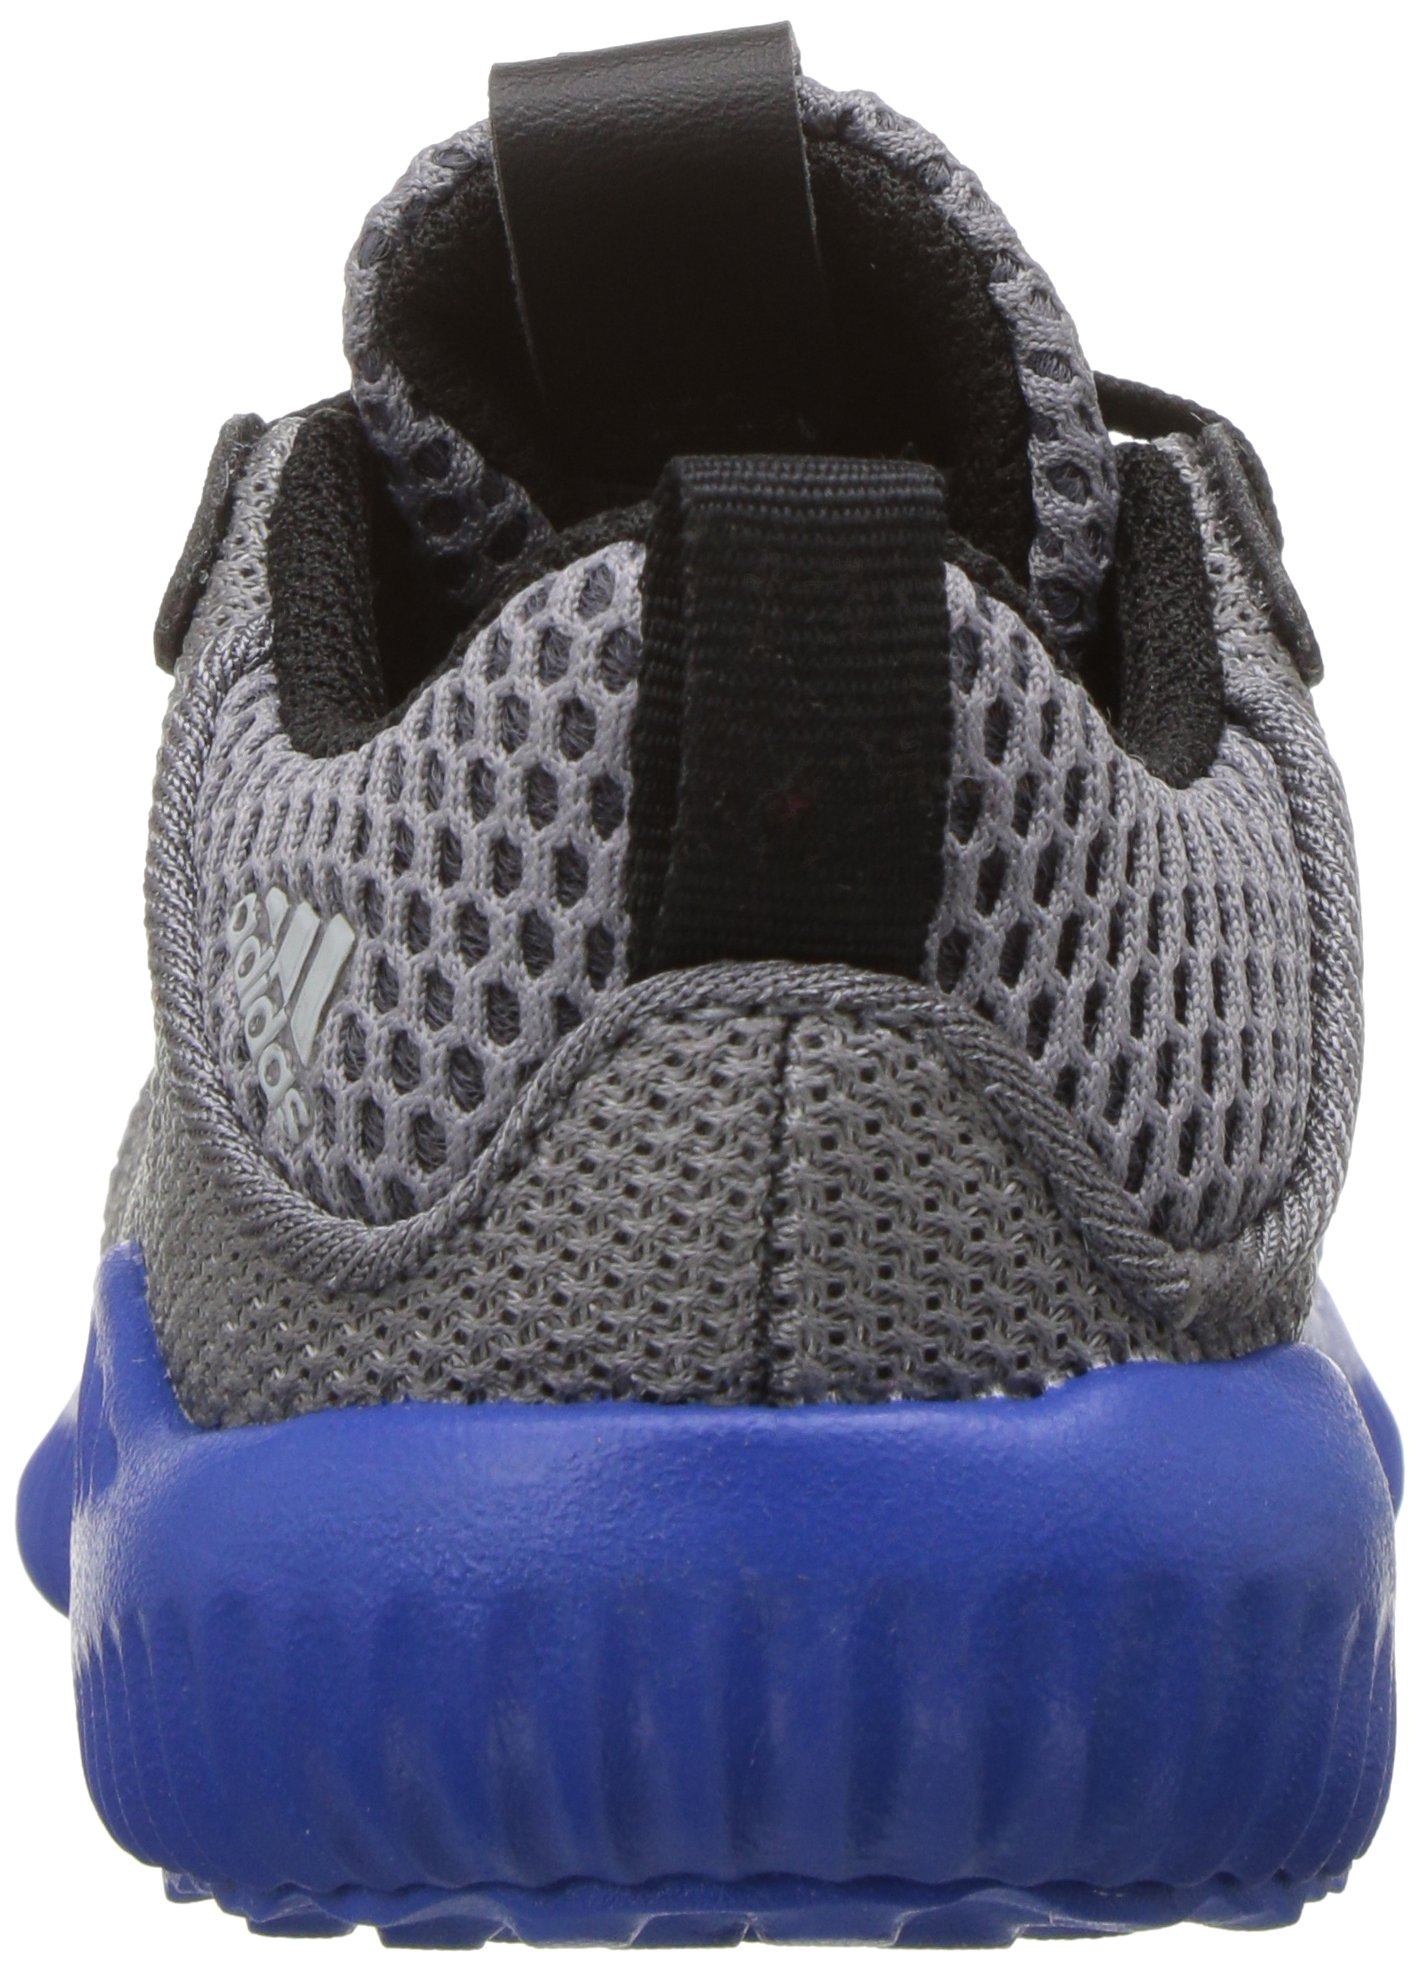 adidas Kids' Alphabounce Sneaker, Grey/Light Onix/Satellite, 7 M US Toddler by adidas (Image #2)